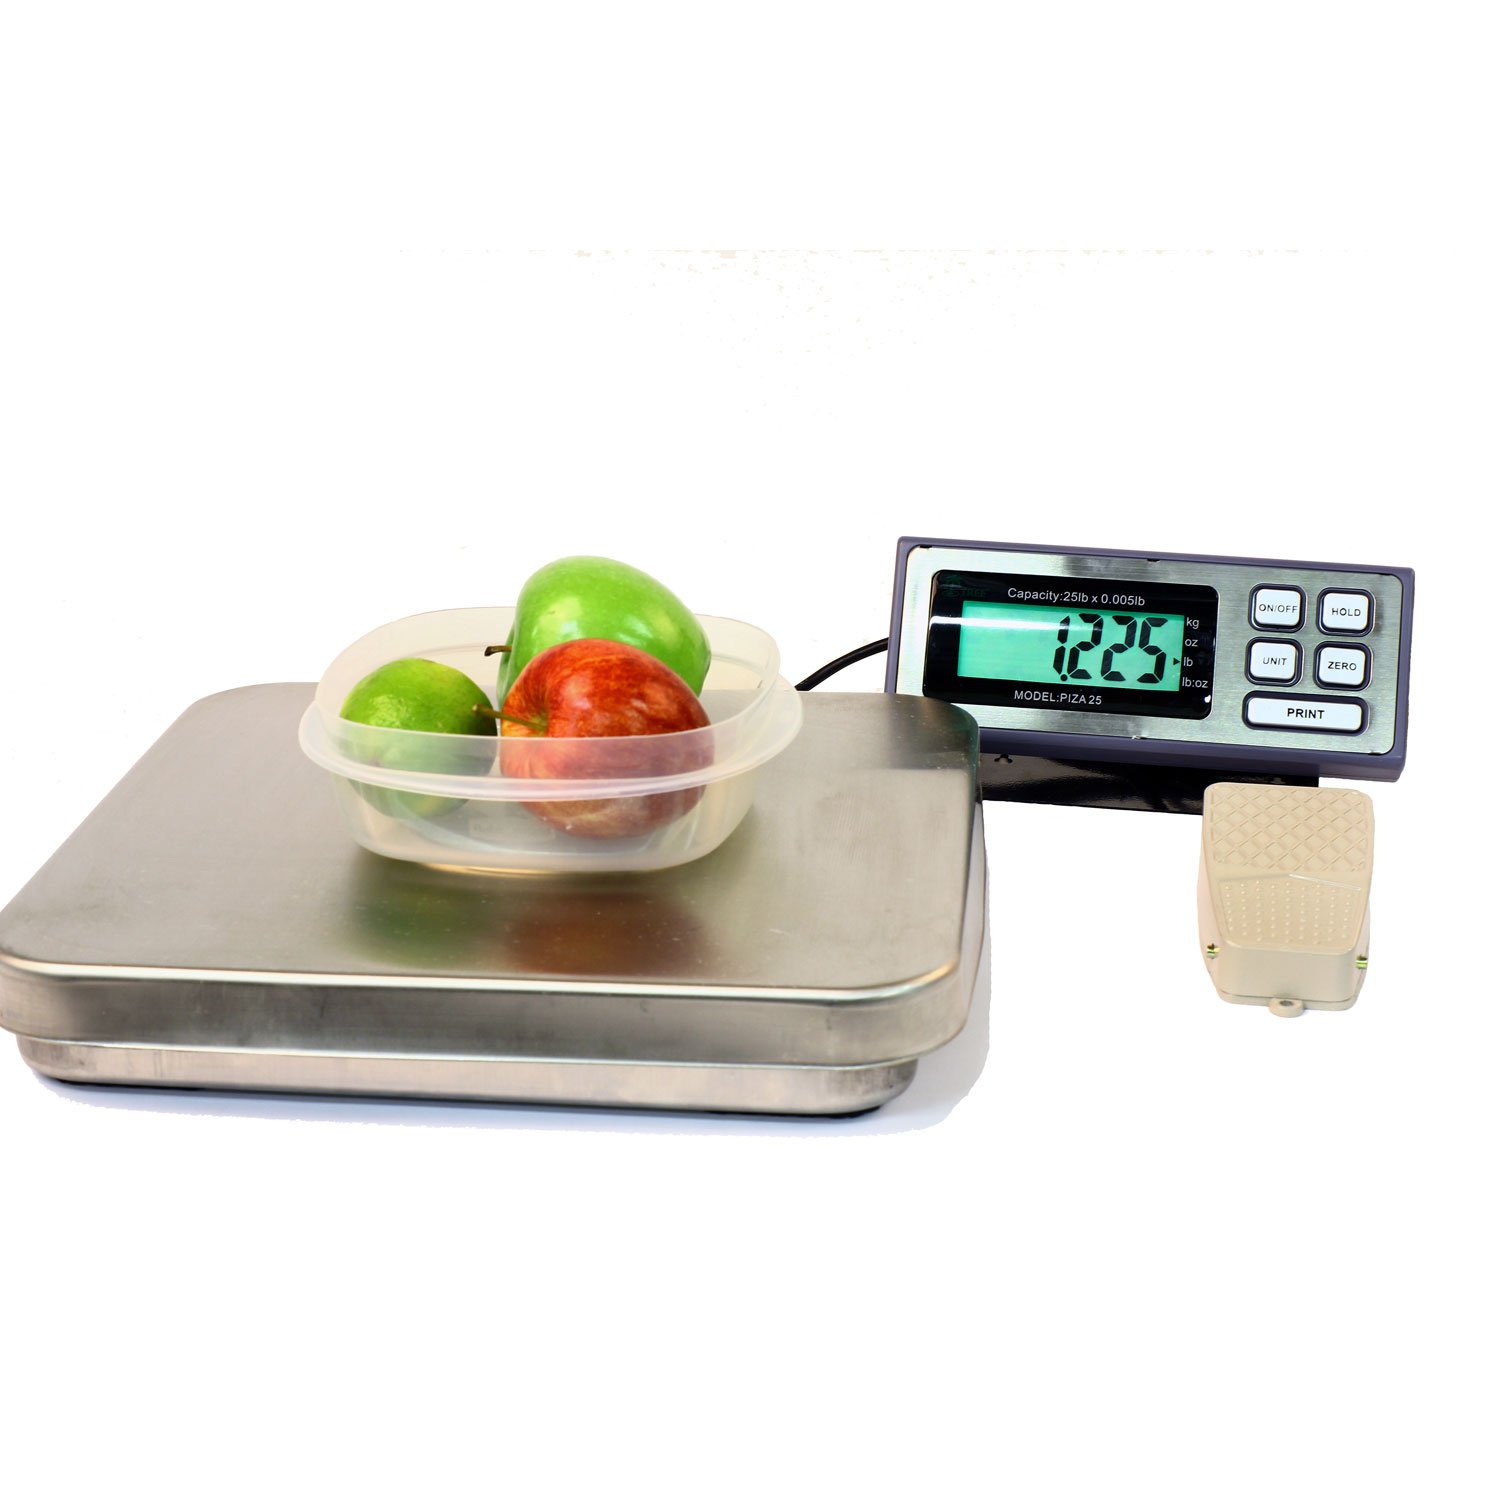 Pizza Kitchen Bench Scale 12lbs x 0.002lb Tree PIZA 12 RS232 AC